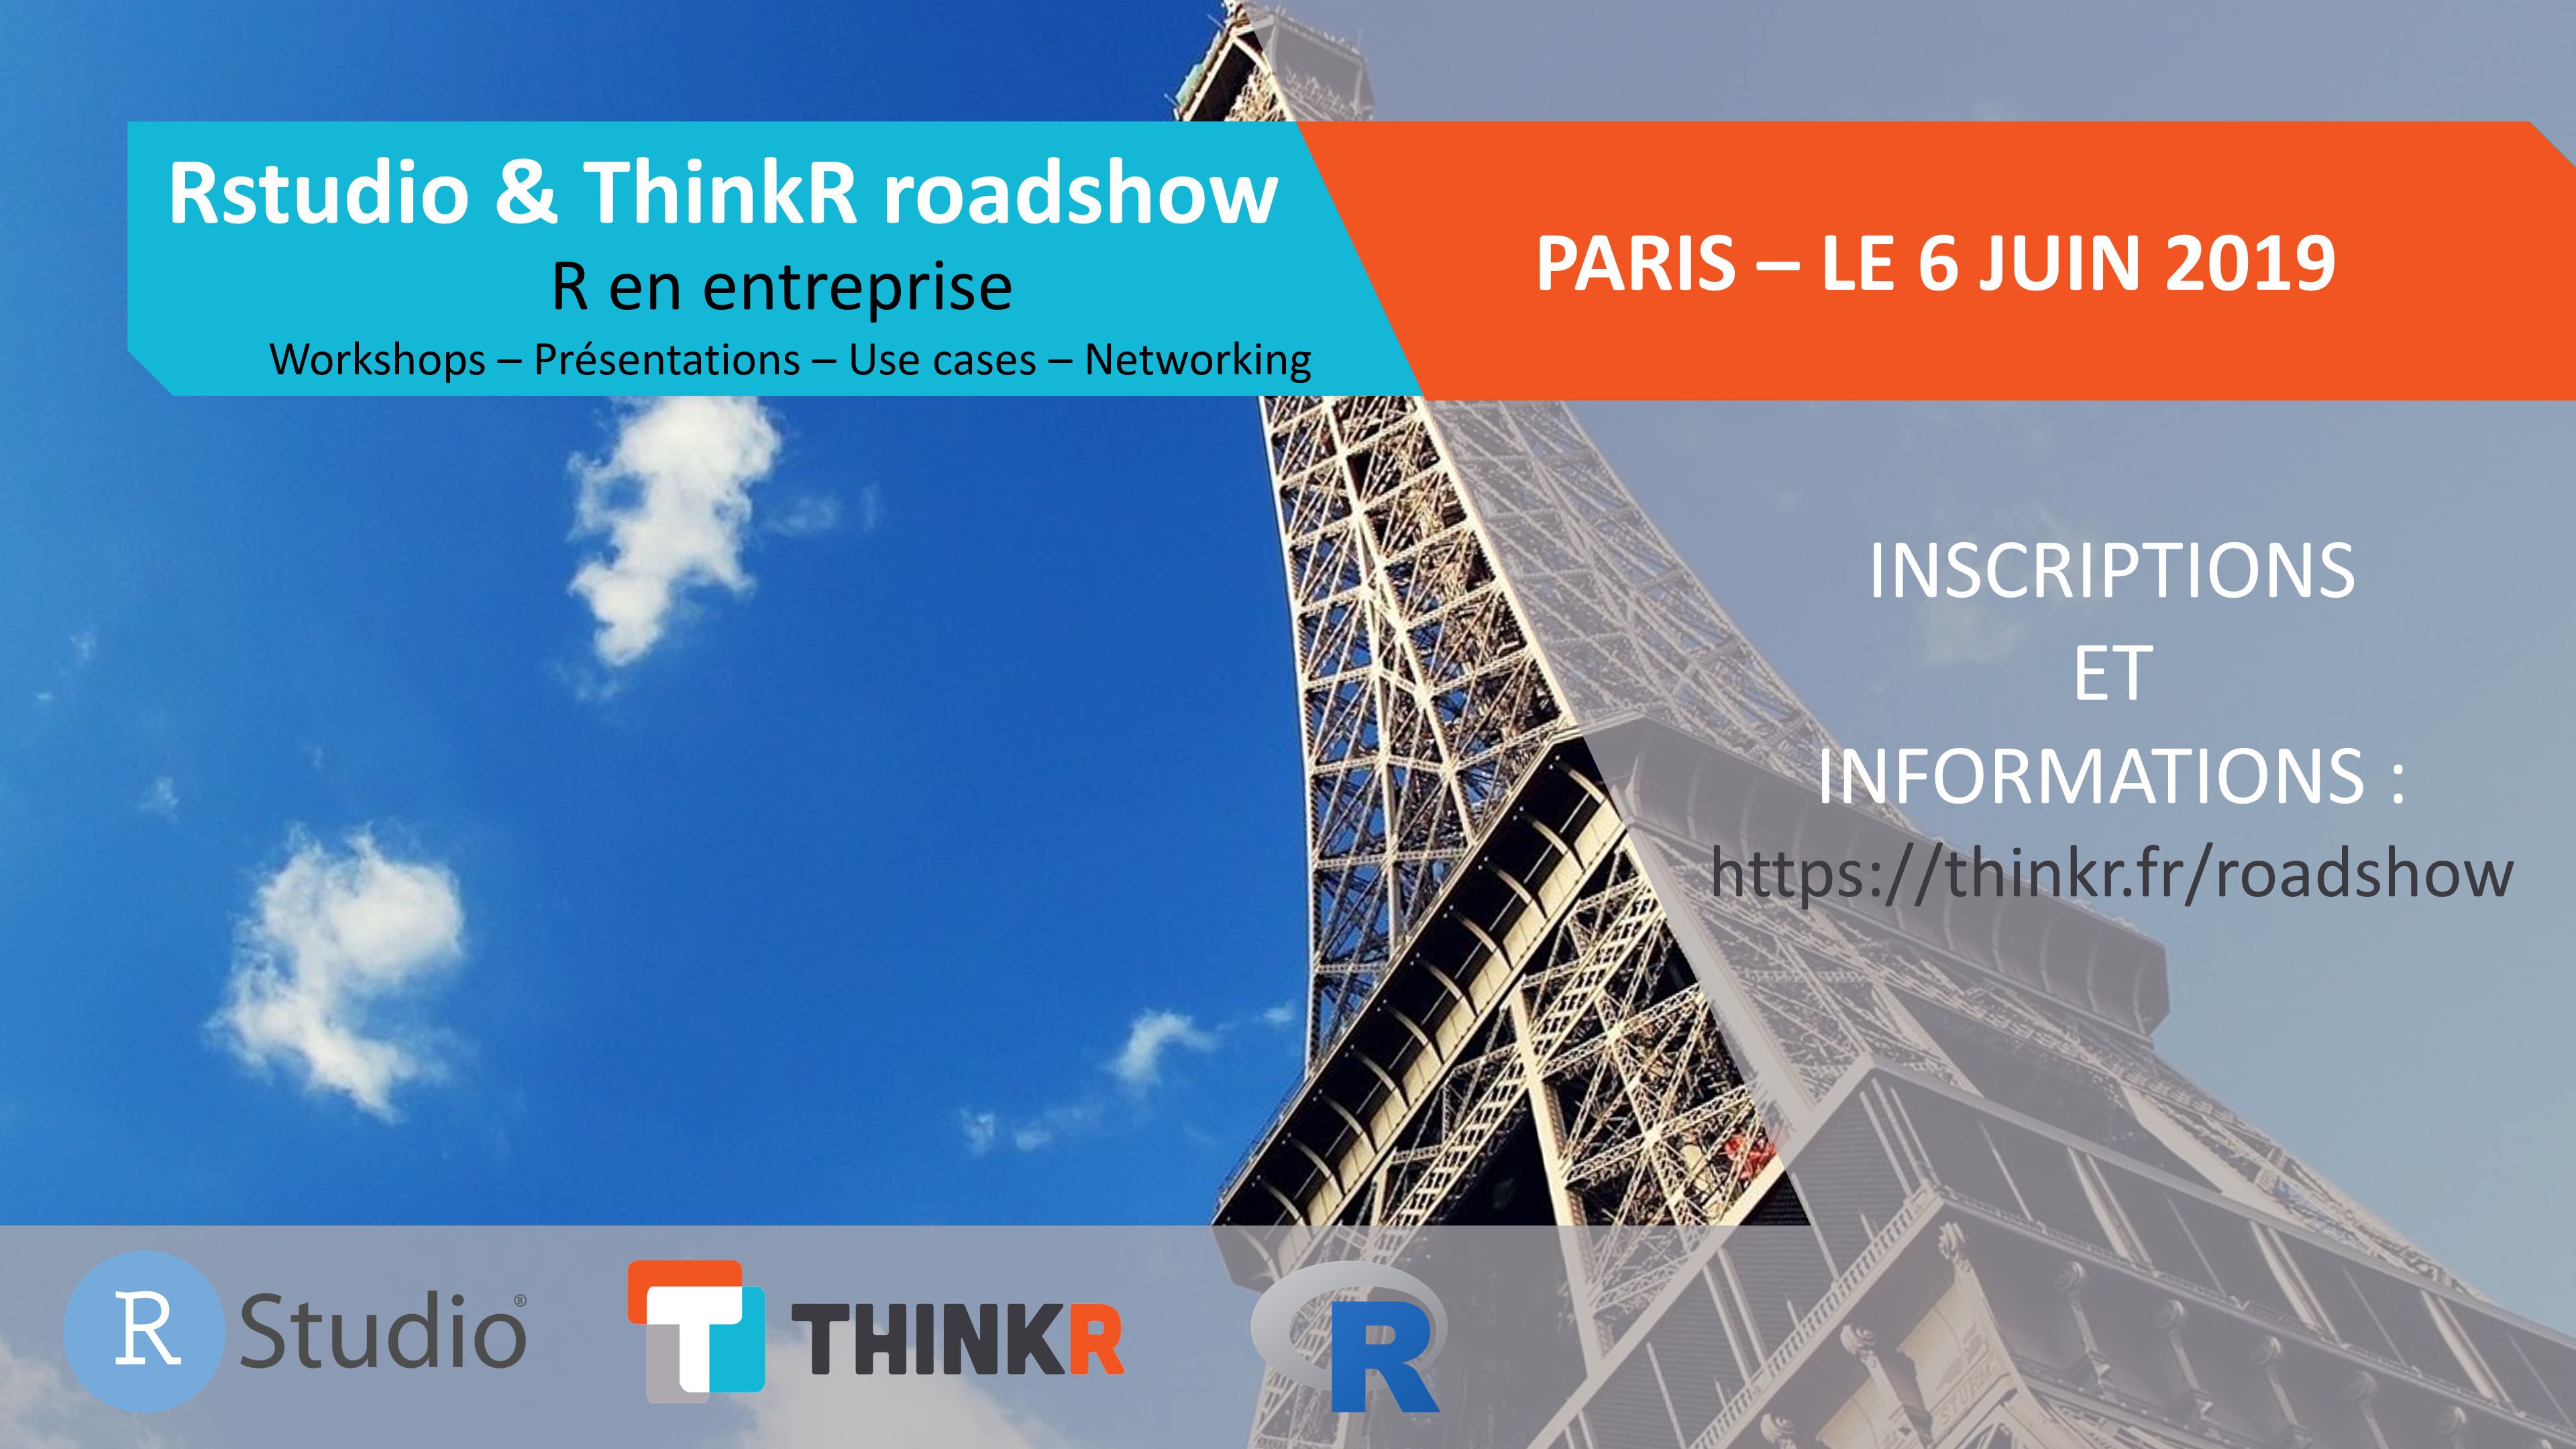 Rstudio & Thinkr roadshow